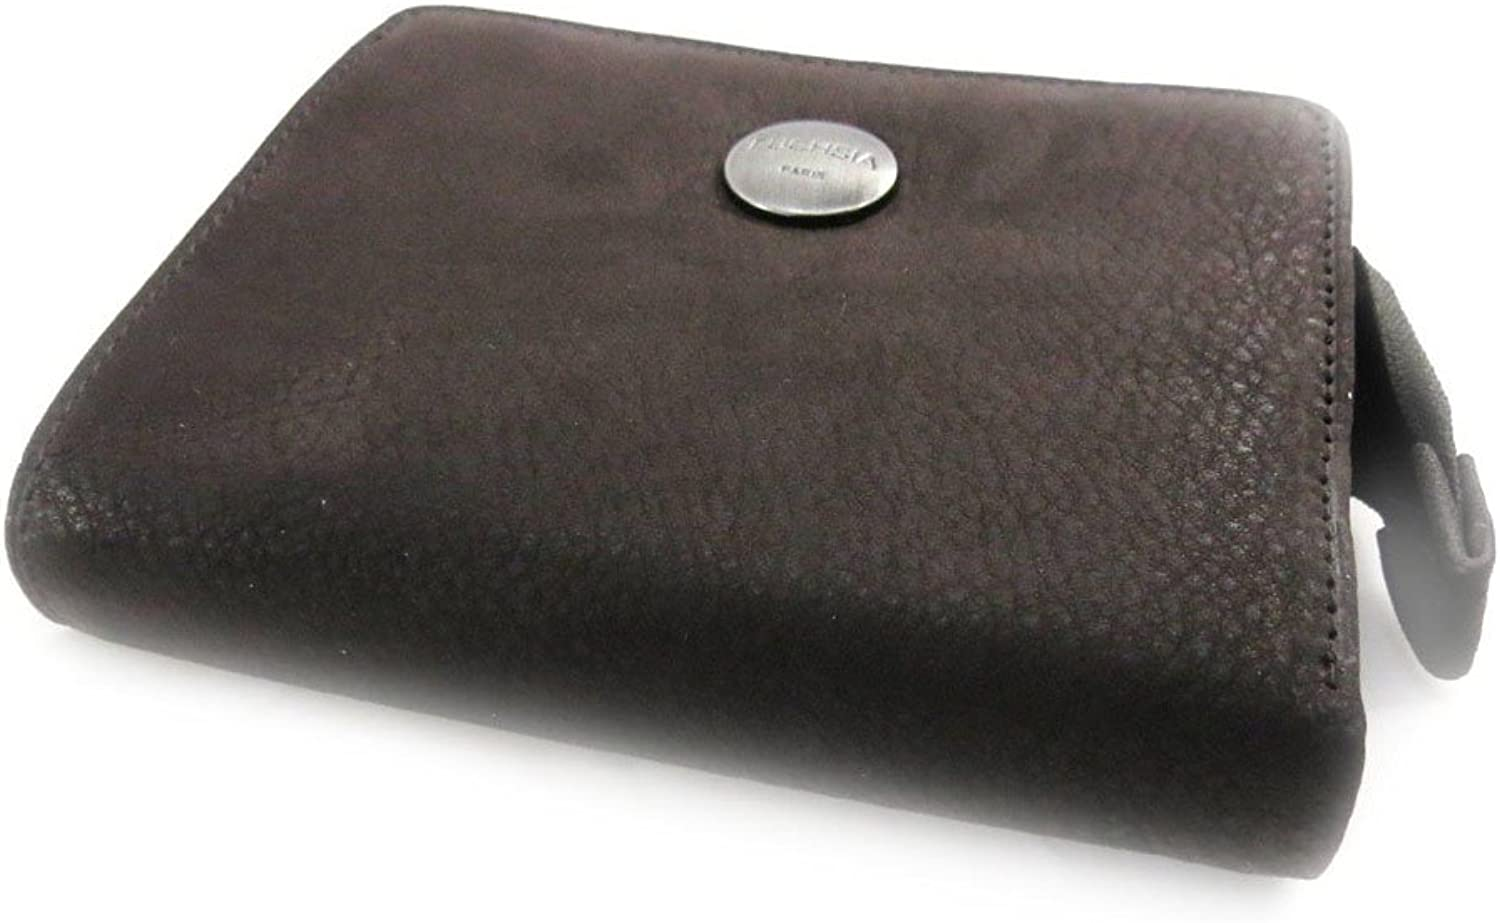 Wallet card holder leather 'Fuchsia' brown vintage.